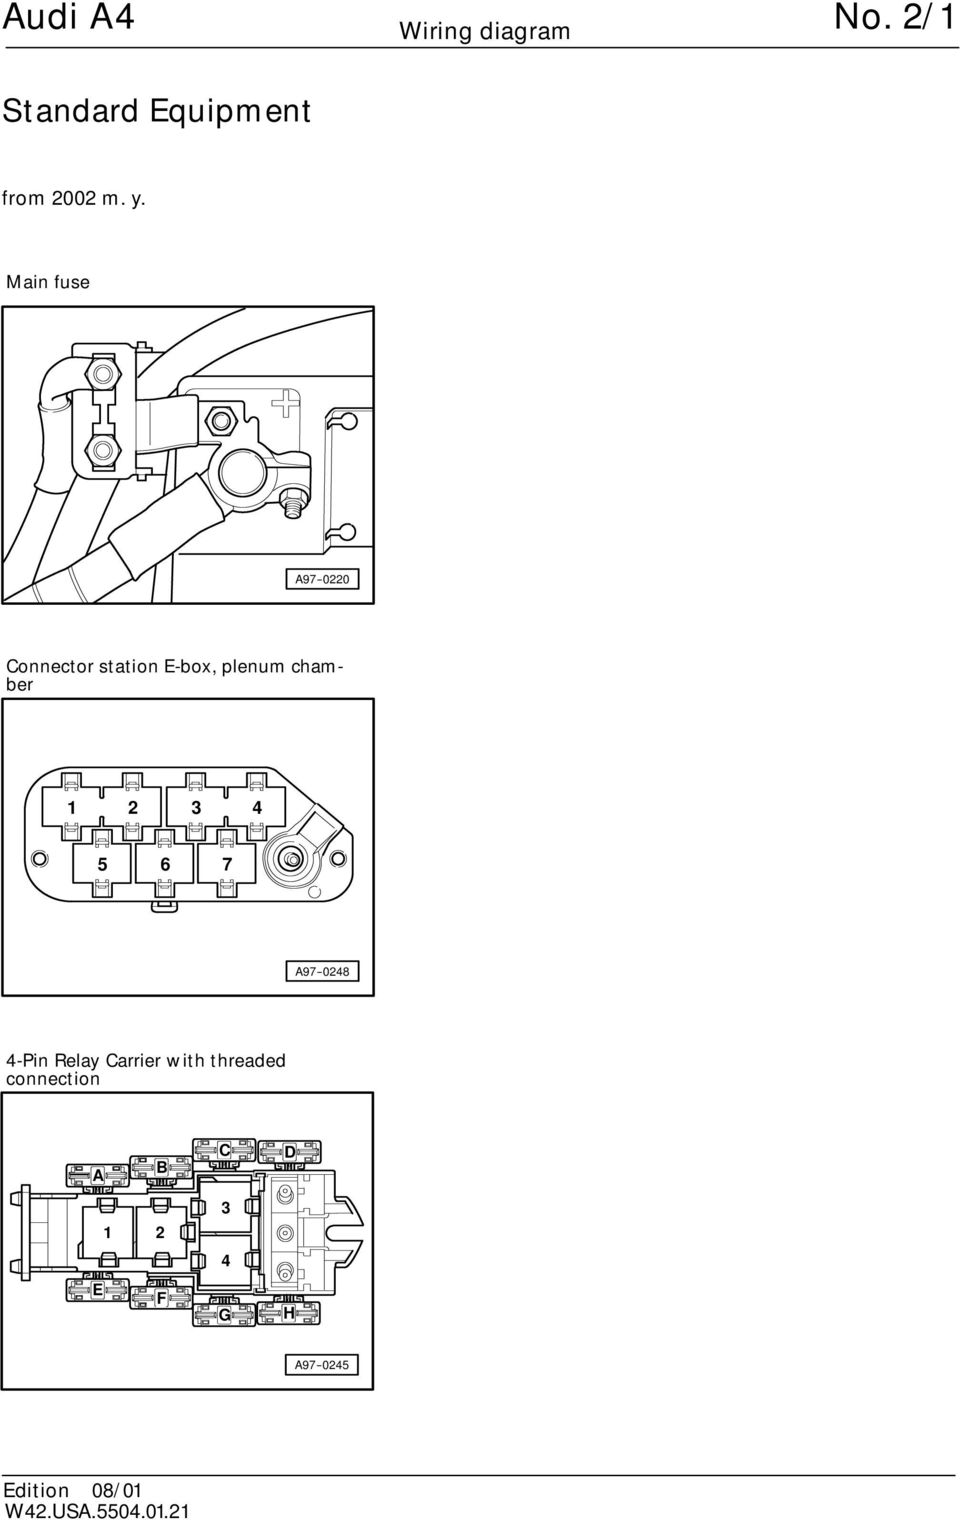 Audi A4 No 2 1 Standard Equipment Wiring Diagram From 2002 M Y Schematic Transcription